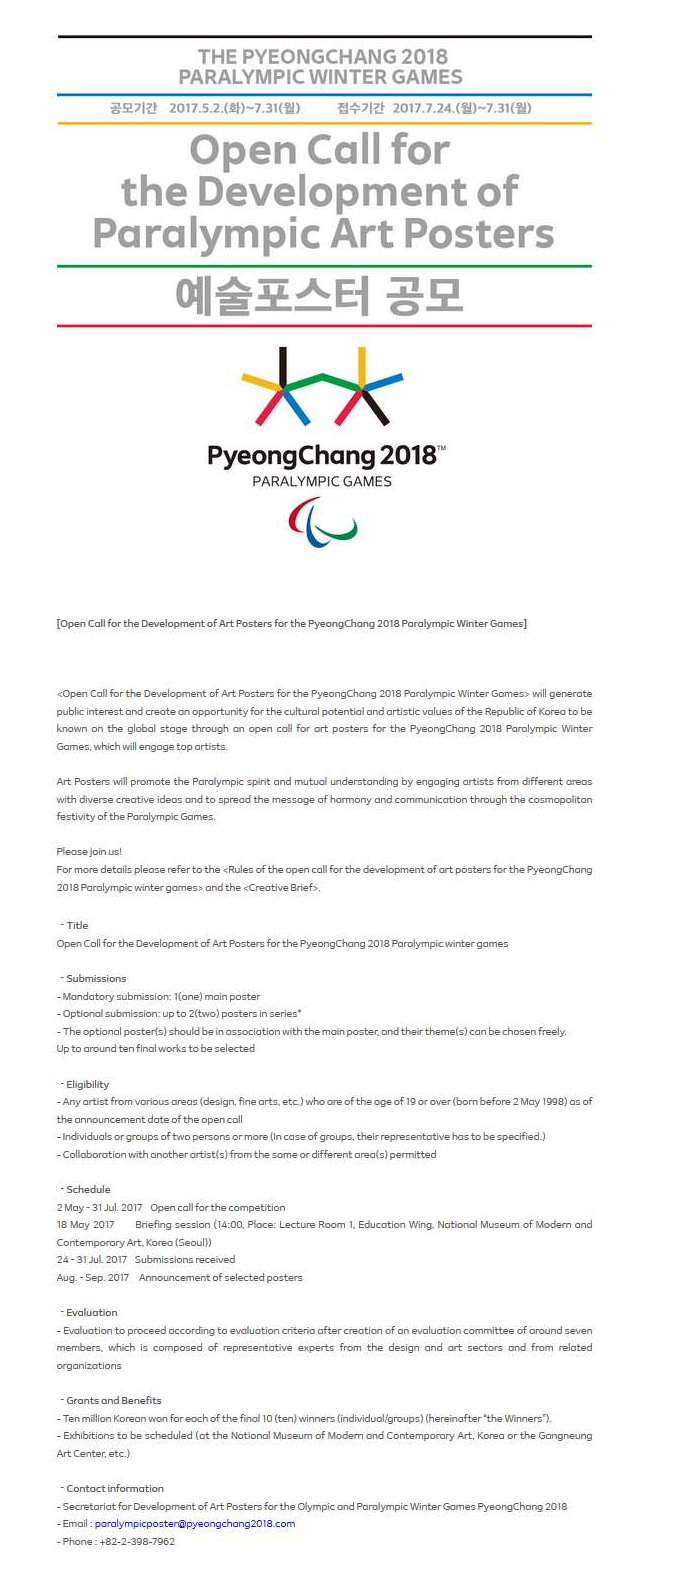 https://www.pyeongchang2018.com/en/paralympics/bbs/notice/standard/view?menuId=744&bbsId=23&cnId=1402&rows=1&pageNo=1&searchOpt=&searchTxt=&sortSeCd=3&mainYn=&mainBbsId=